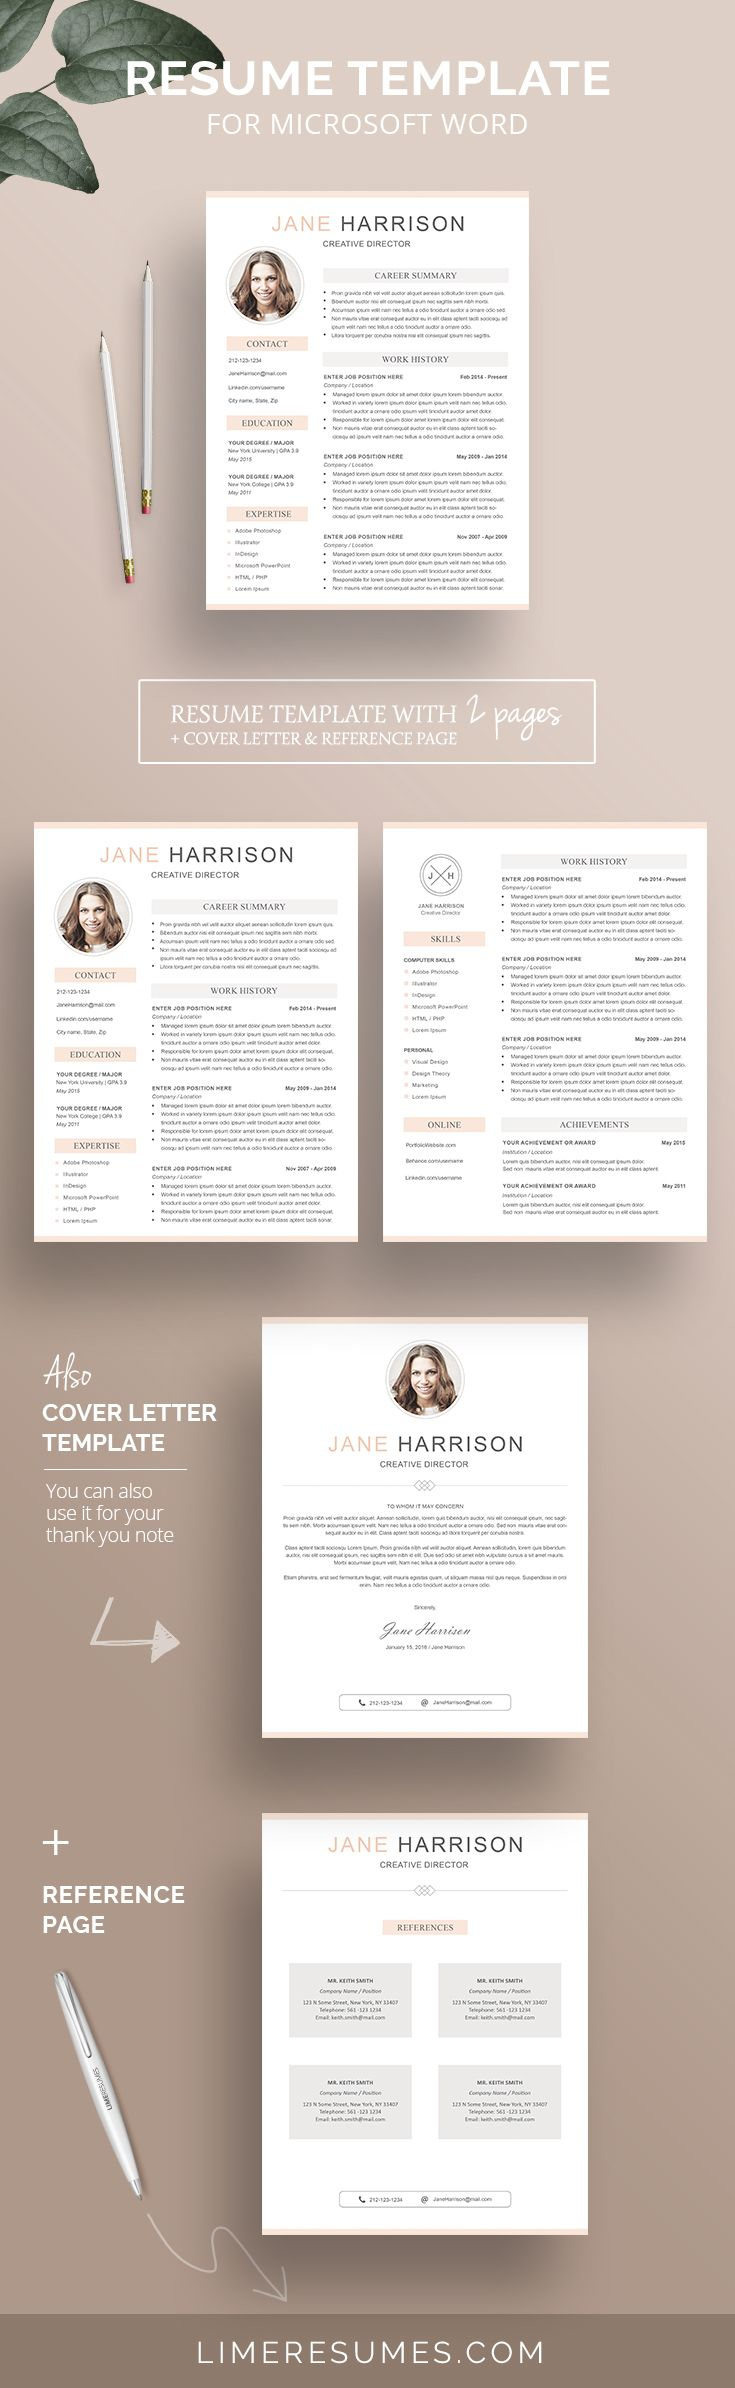 Modern resume template with photo Easy to